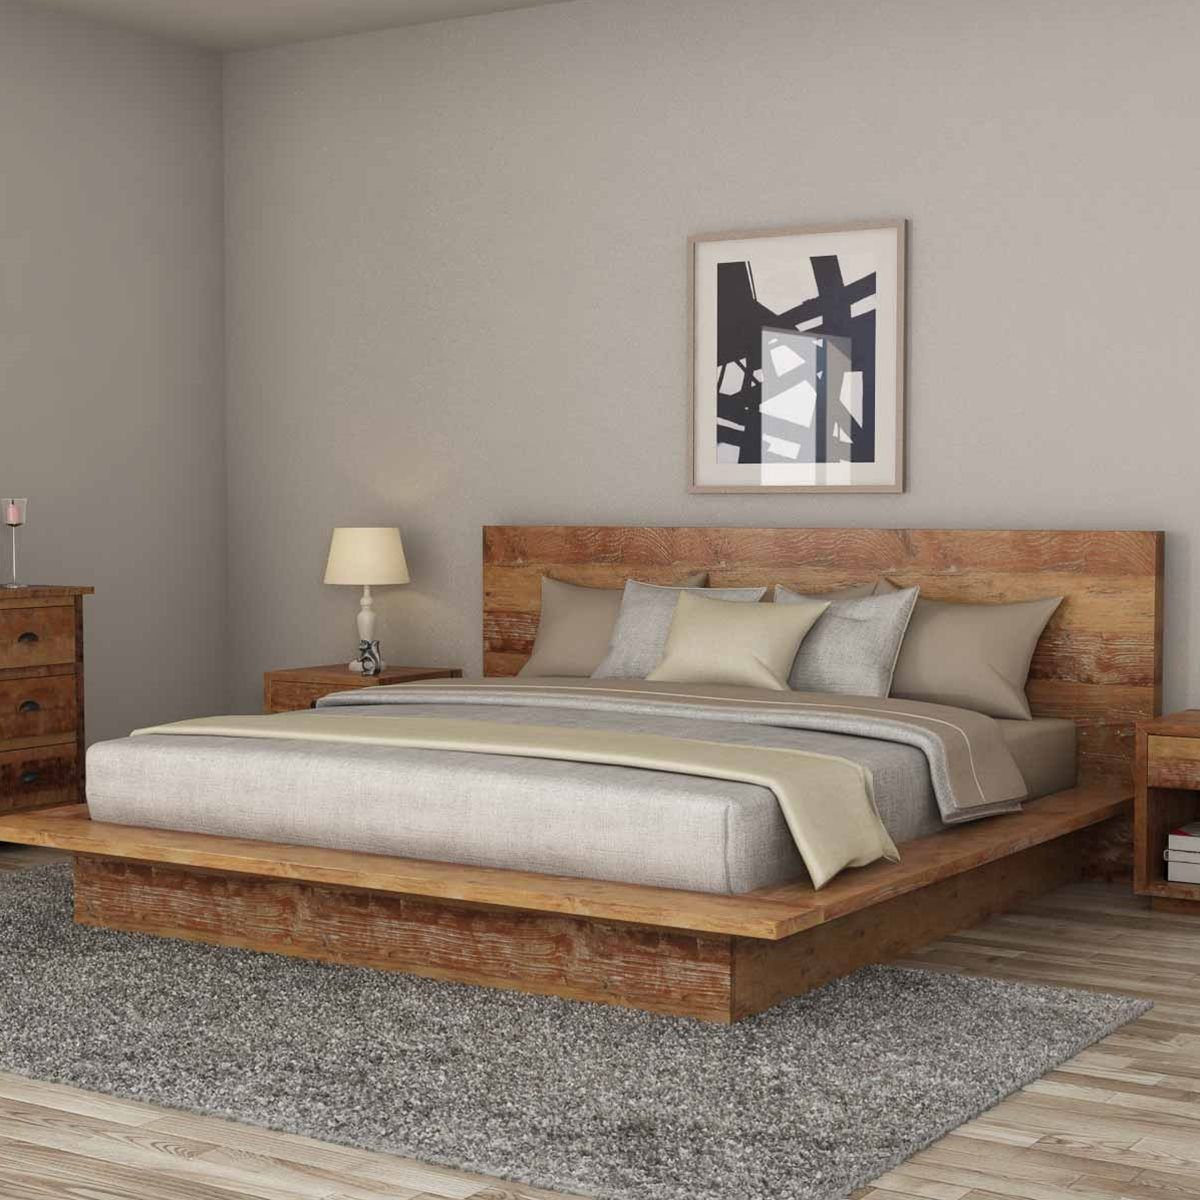 15 Perfect Diy Wood Pallet Crafts With Images Platform Bed